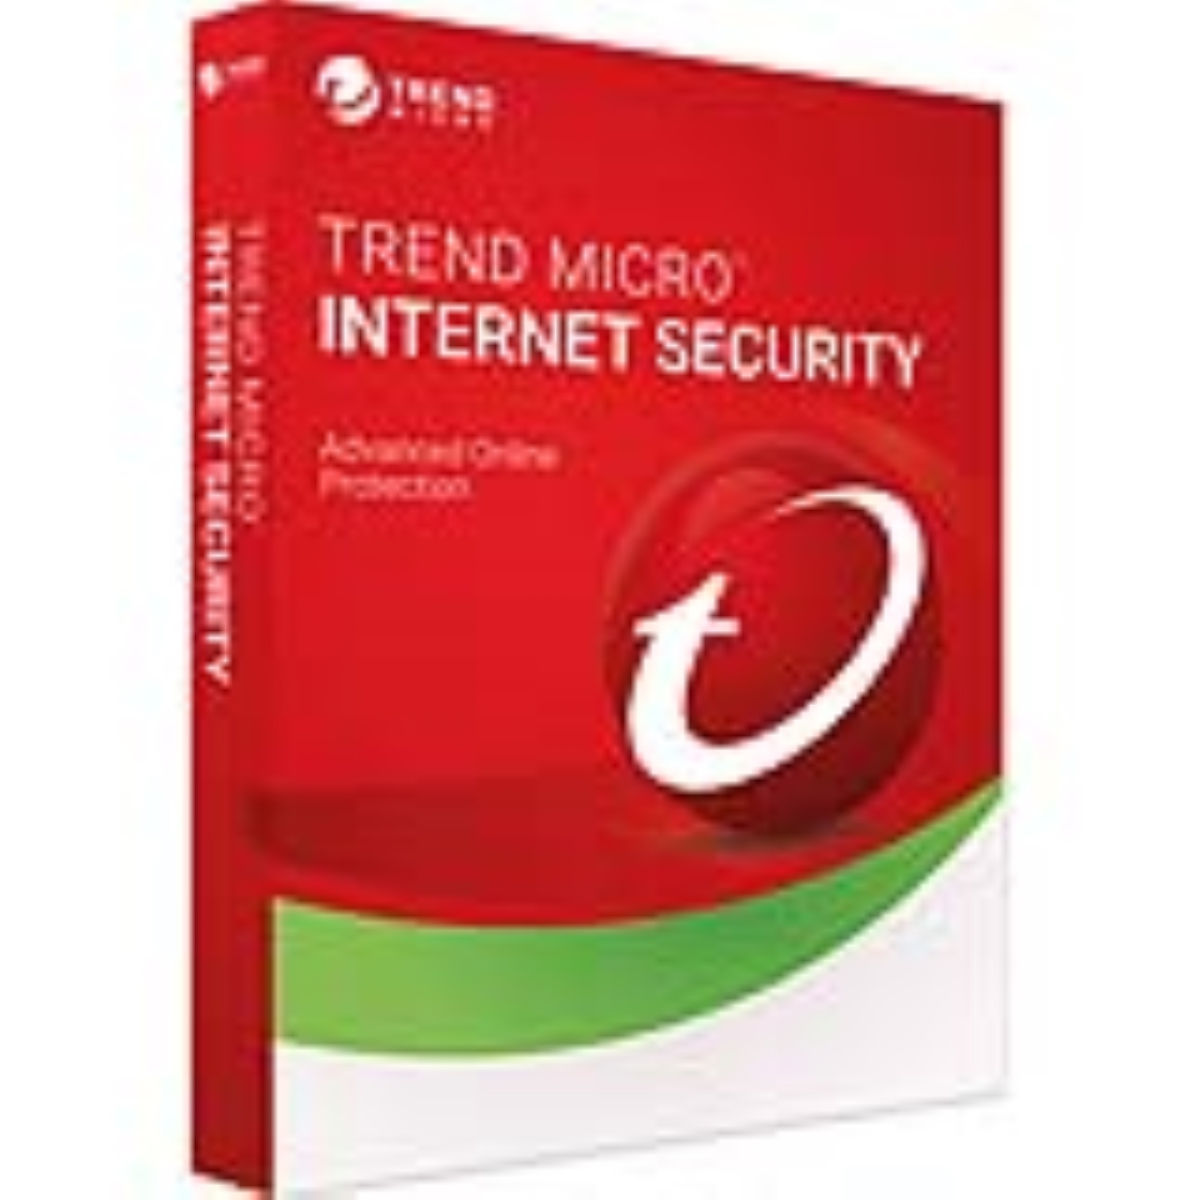 Trend Micro Internet Security 1 Pc 2 Year